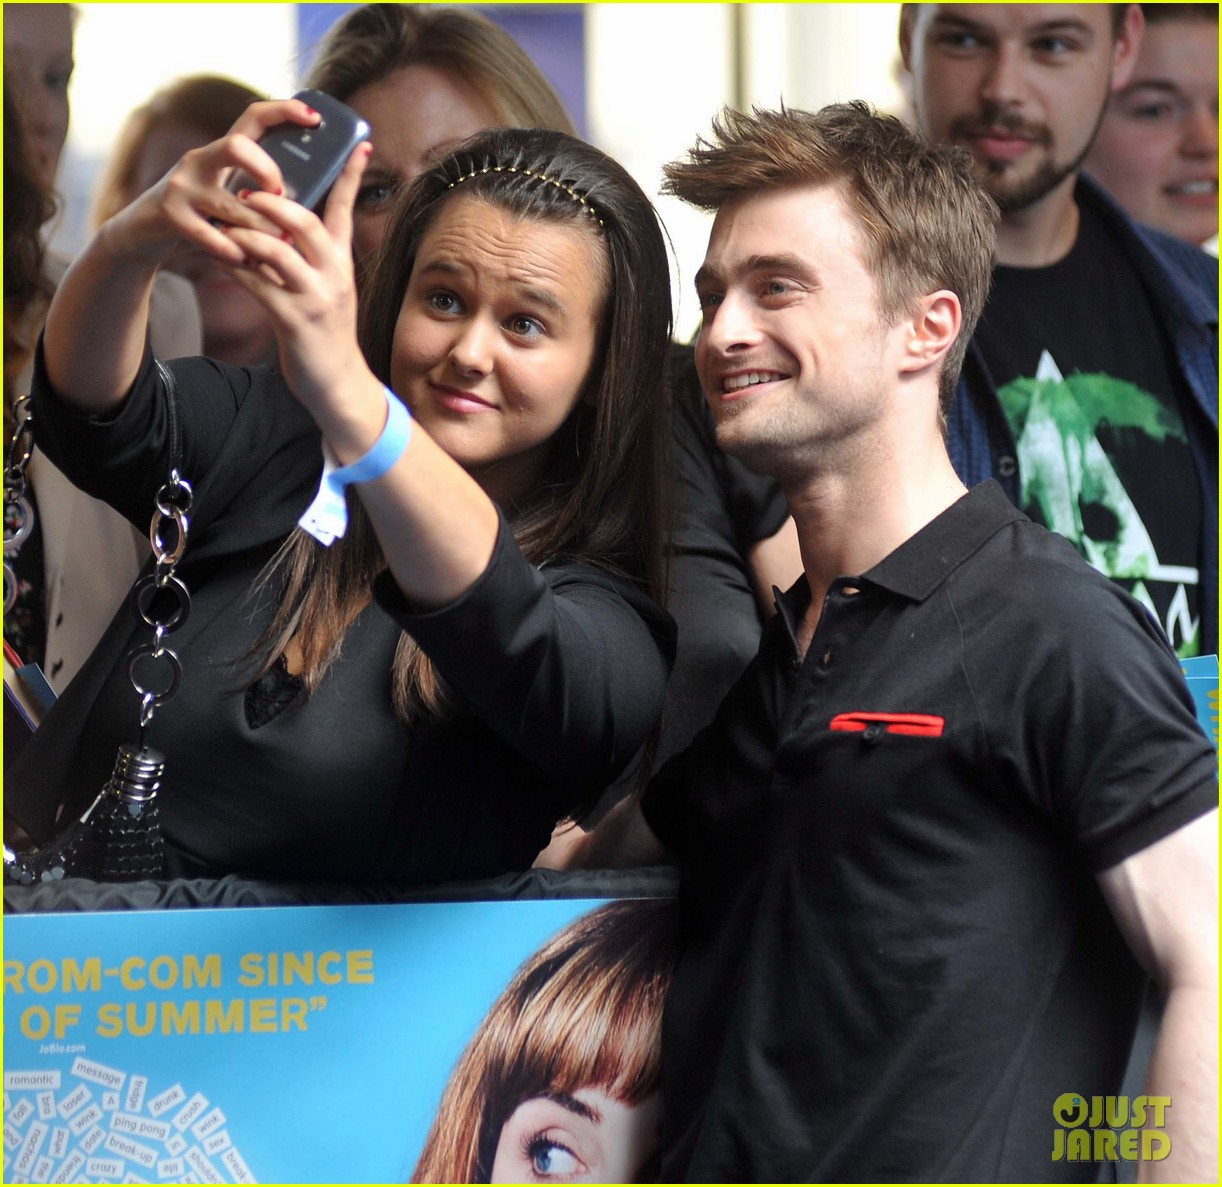 daniel radcliffe pose with fans what if dublin ireland 15